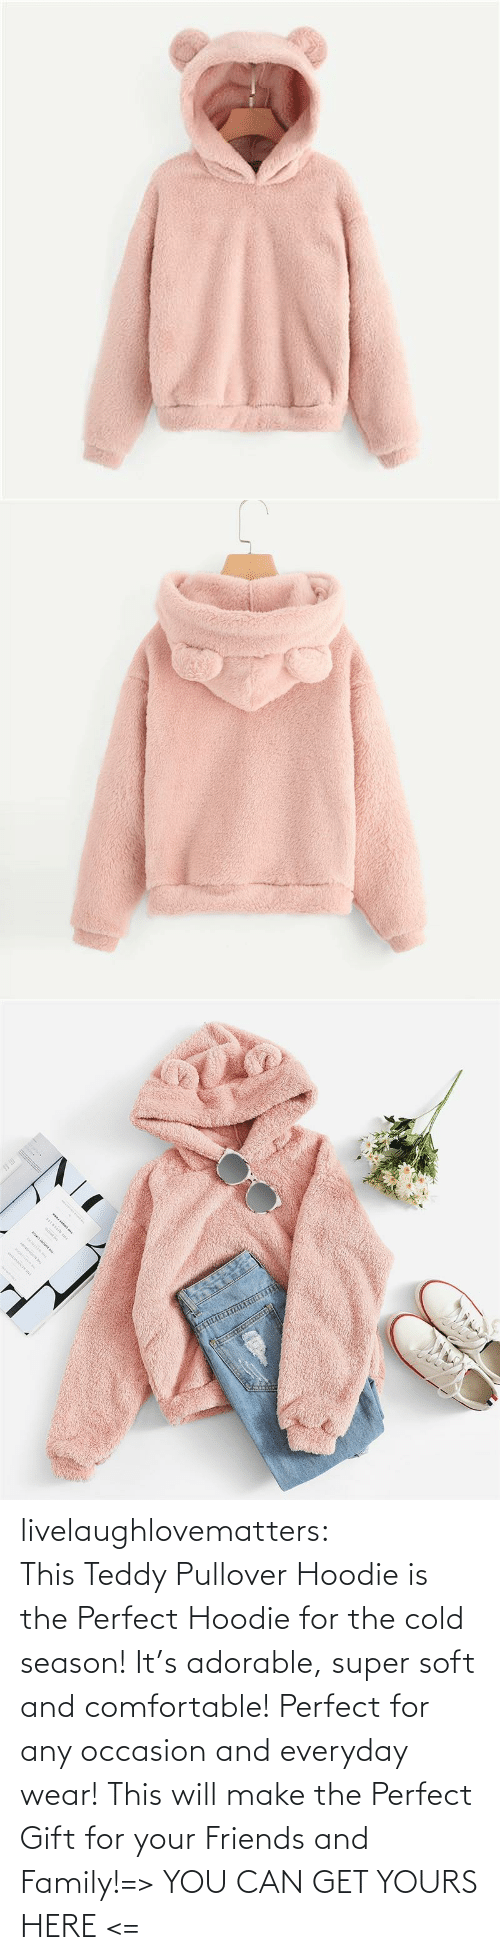 comfortable: www.w. livelaughlovematters:  This Teddy Pullover Hoodie is the Perfect Hoodie for the cold season! It's adorable, super soft and comfortable! Perfect for any occasion and everyday wear! This will make the Perfect Gift for your Friends and Family!=> YOU CAN GET YOURS HERE <=